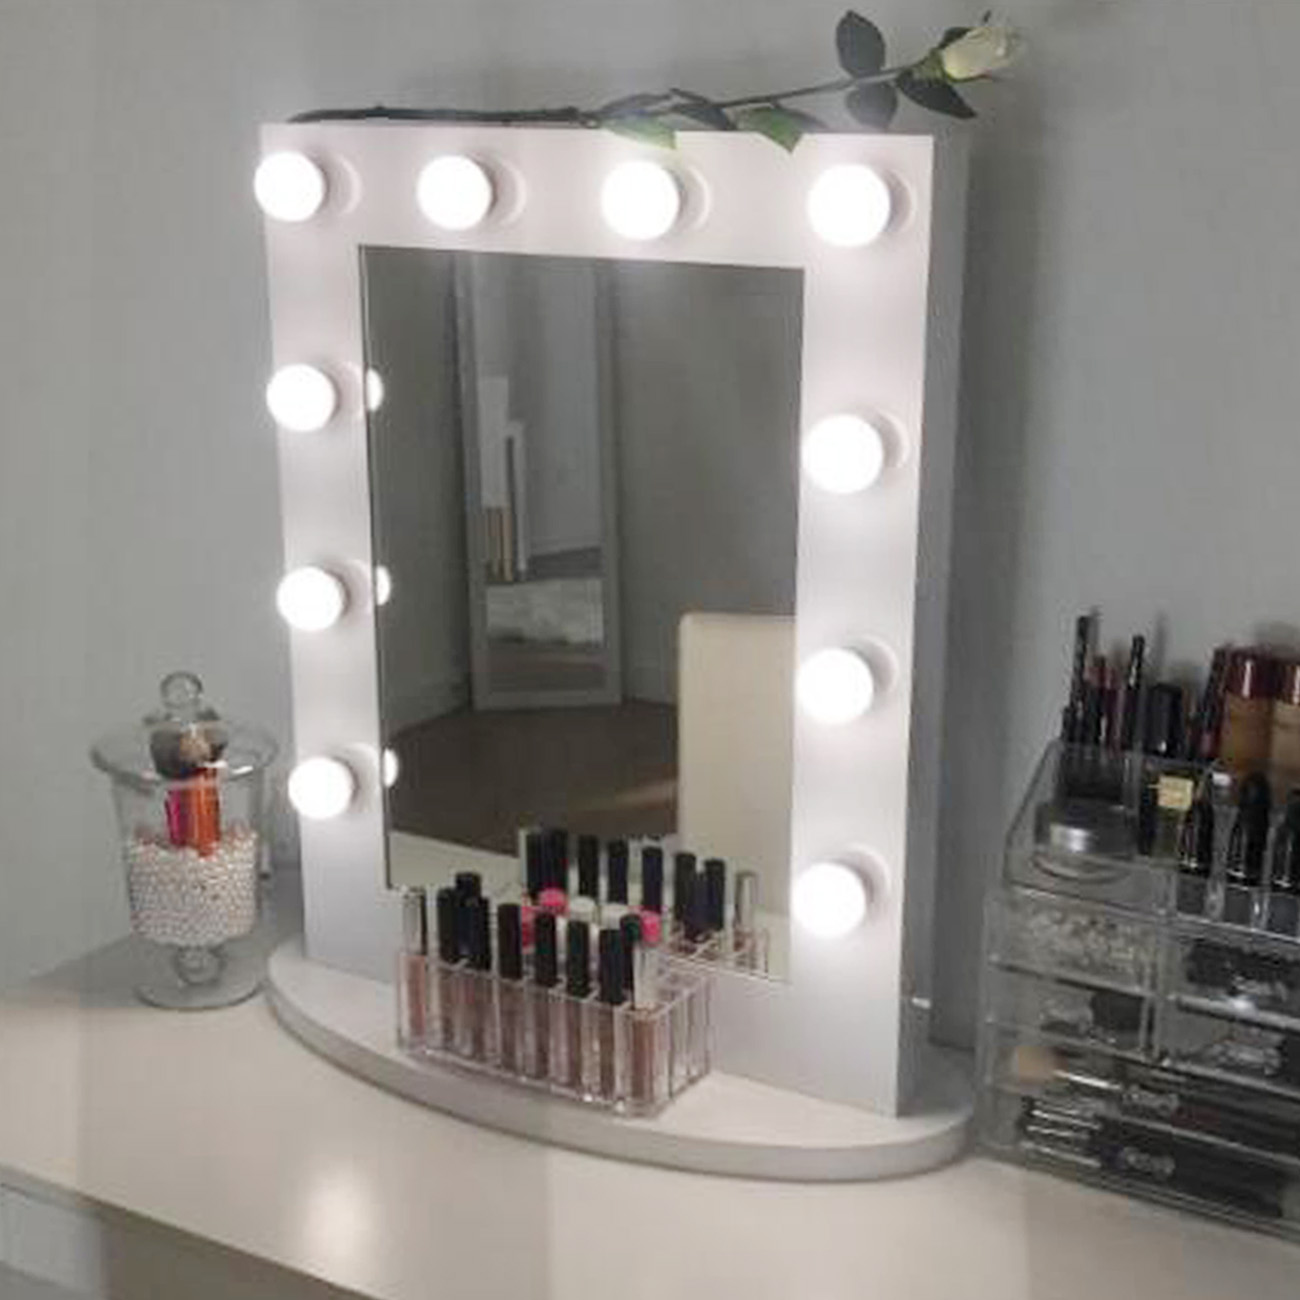 White Hollywood Makeup Vanity Mirror with Light Aluminum Mirror Christmas Gift : eBay